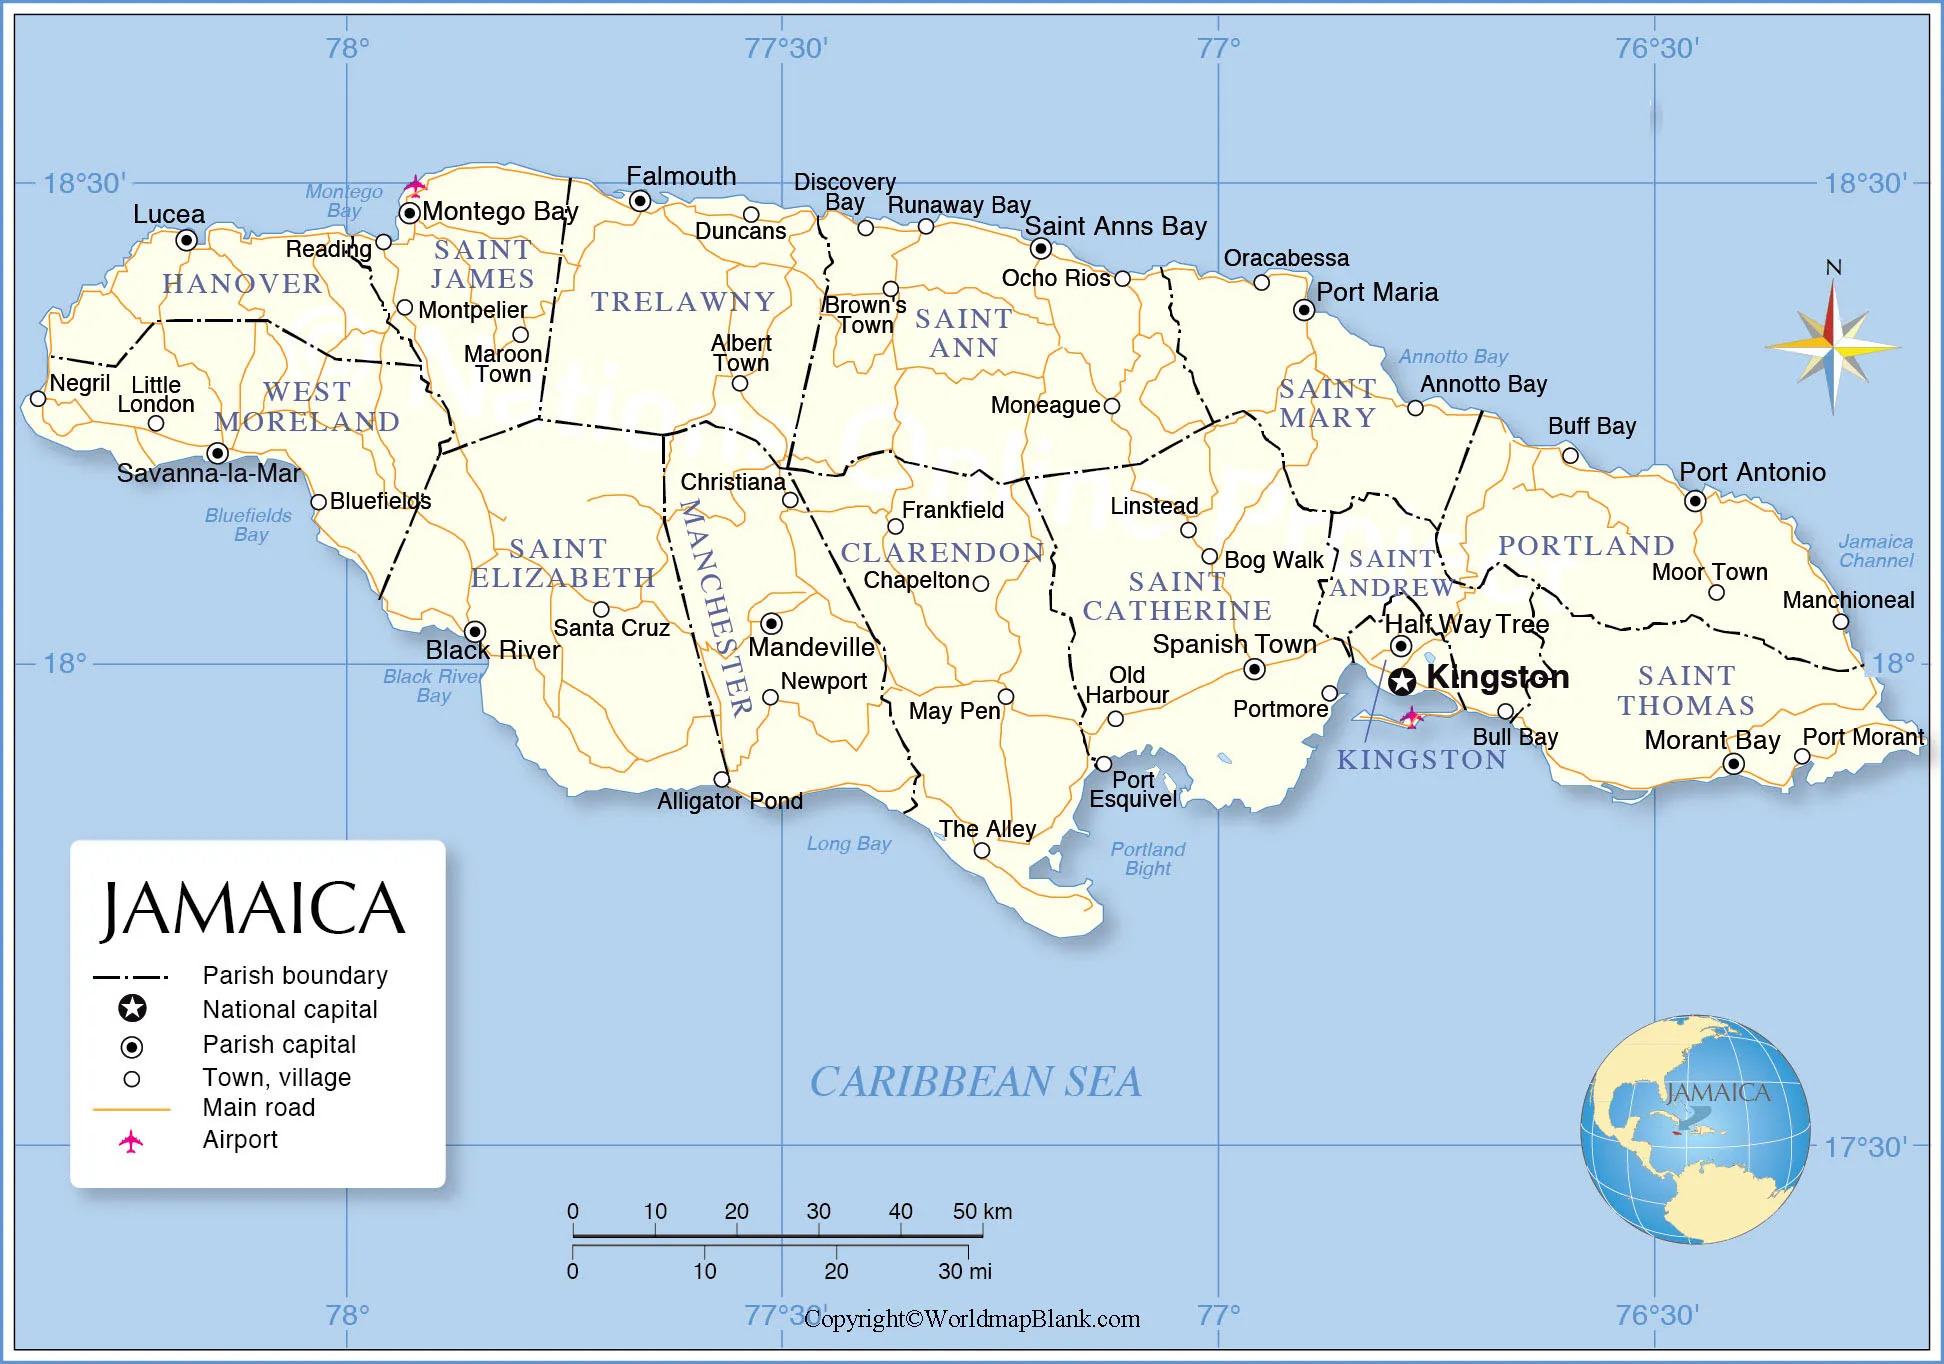 Labeled Jamaica with Capital